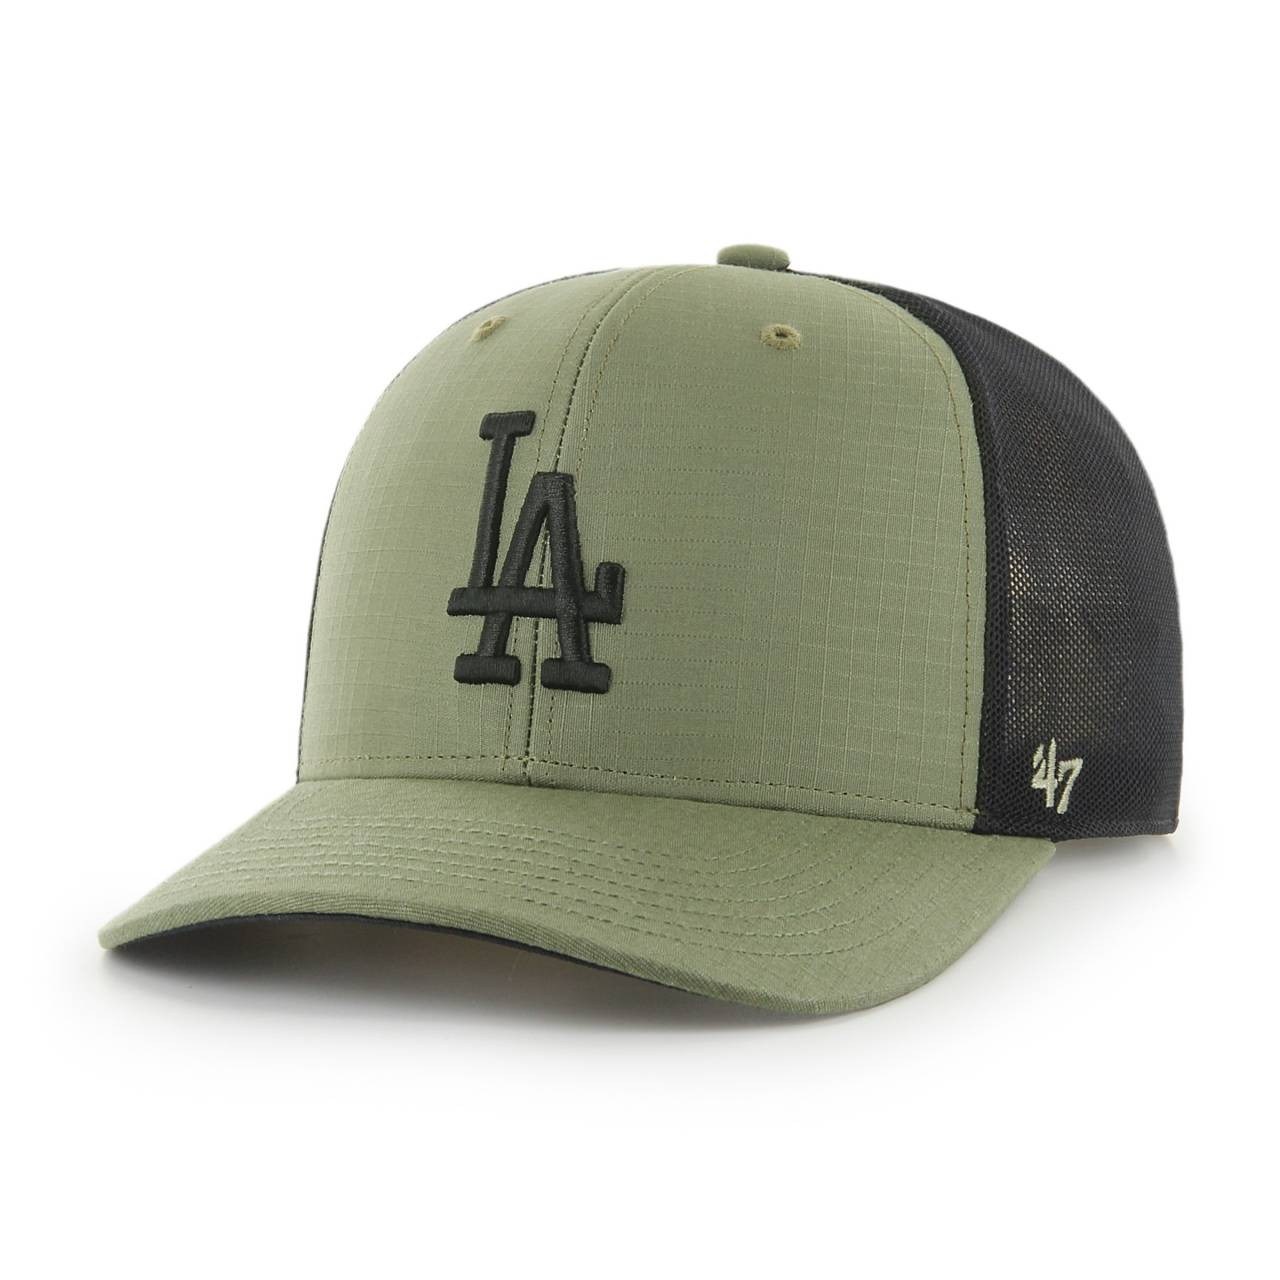 MLB LOS ANGELES DODGERS GRID LOCK MESH '47 MVP DP OLIVE SNAPBACK